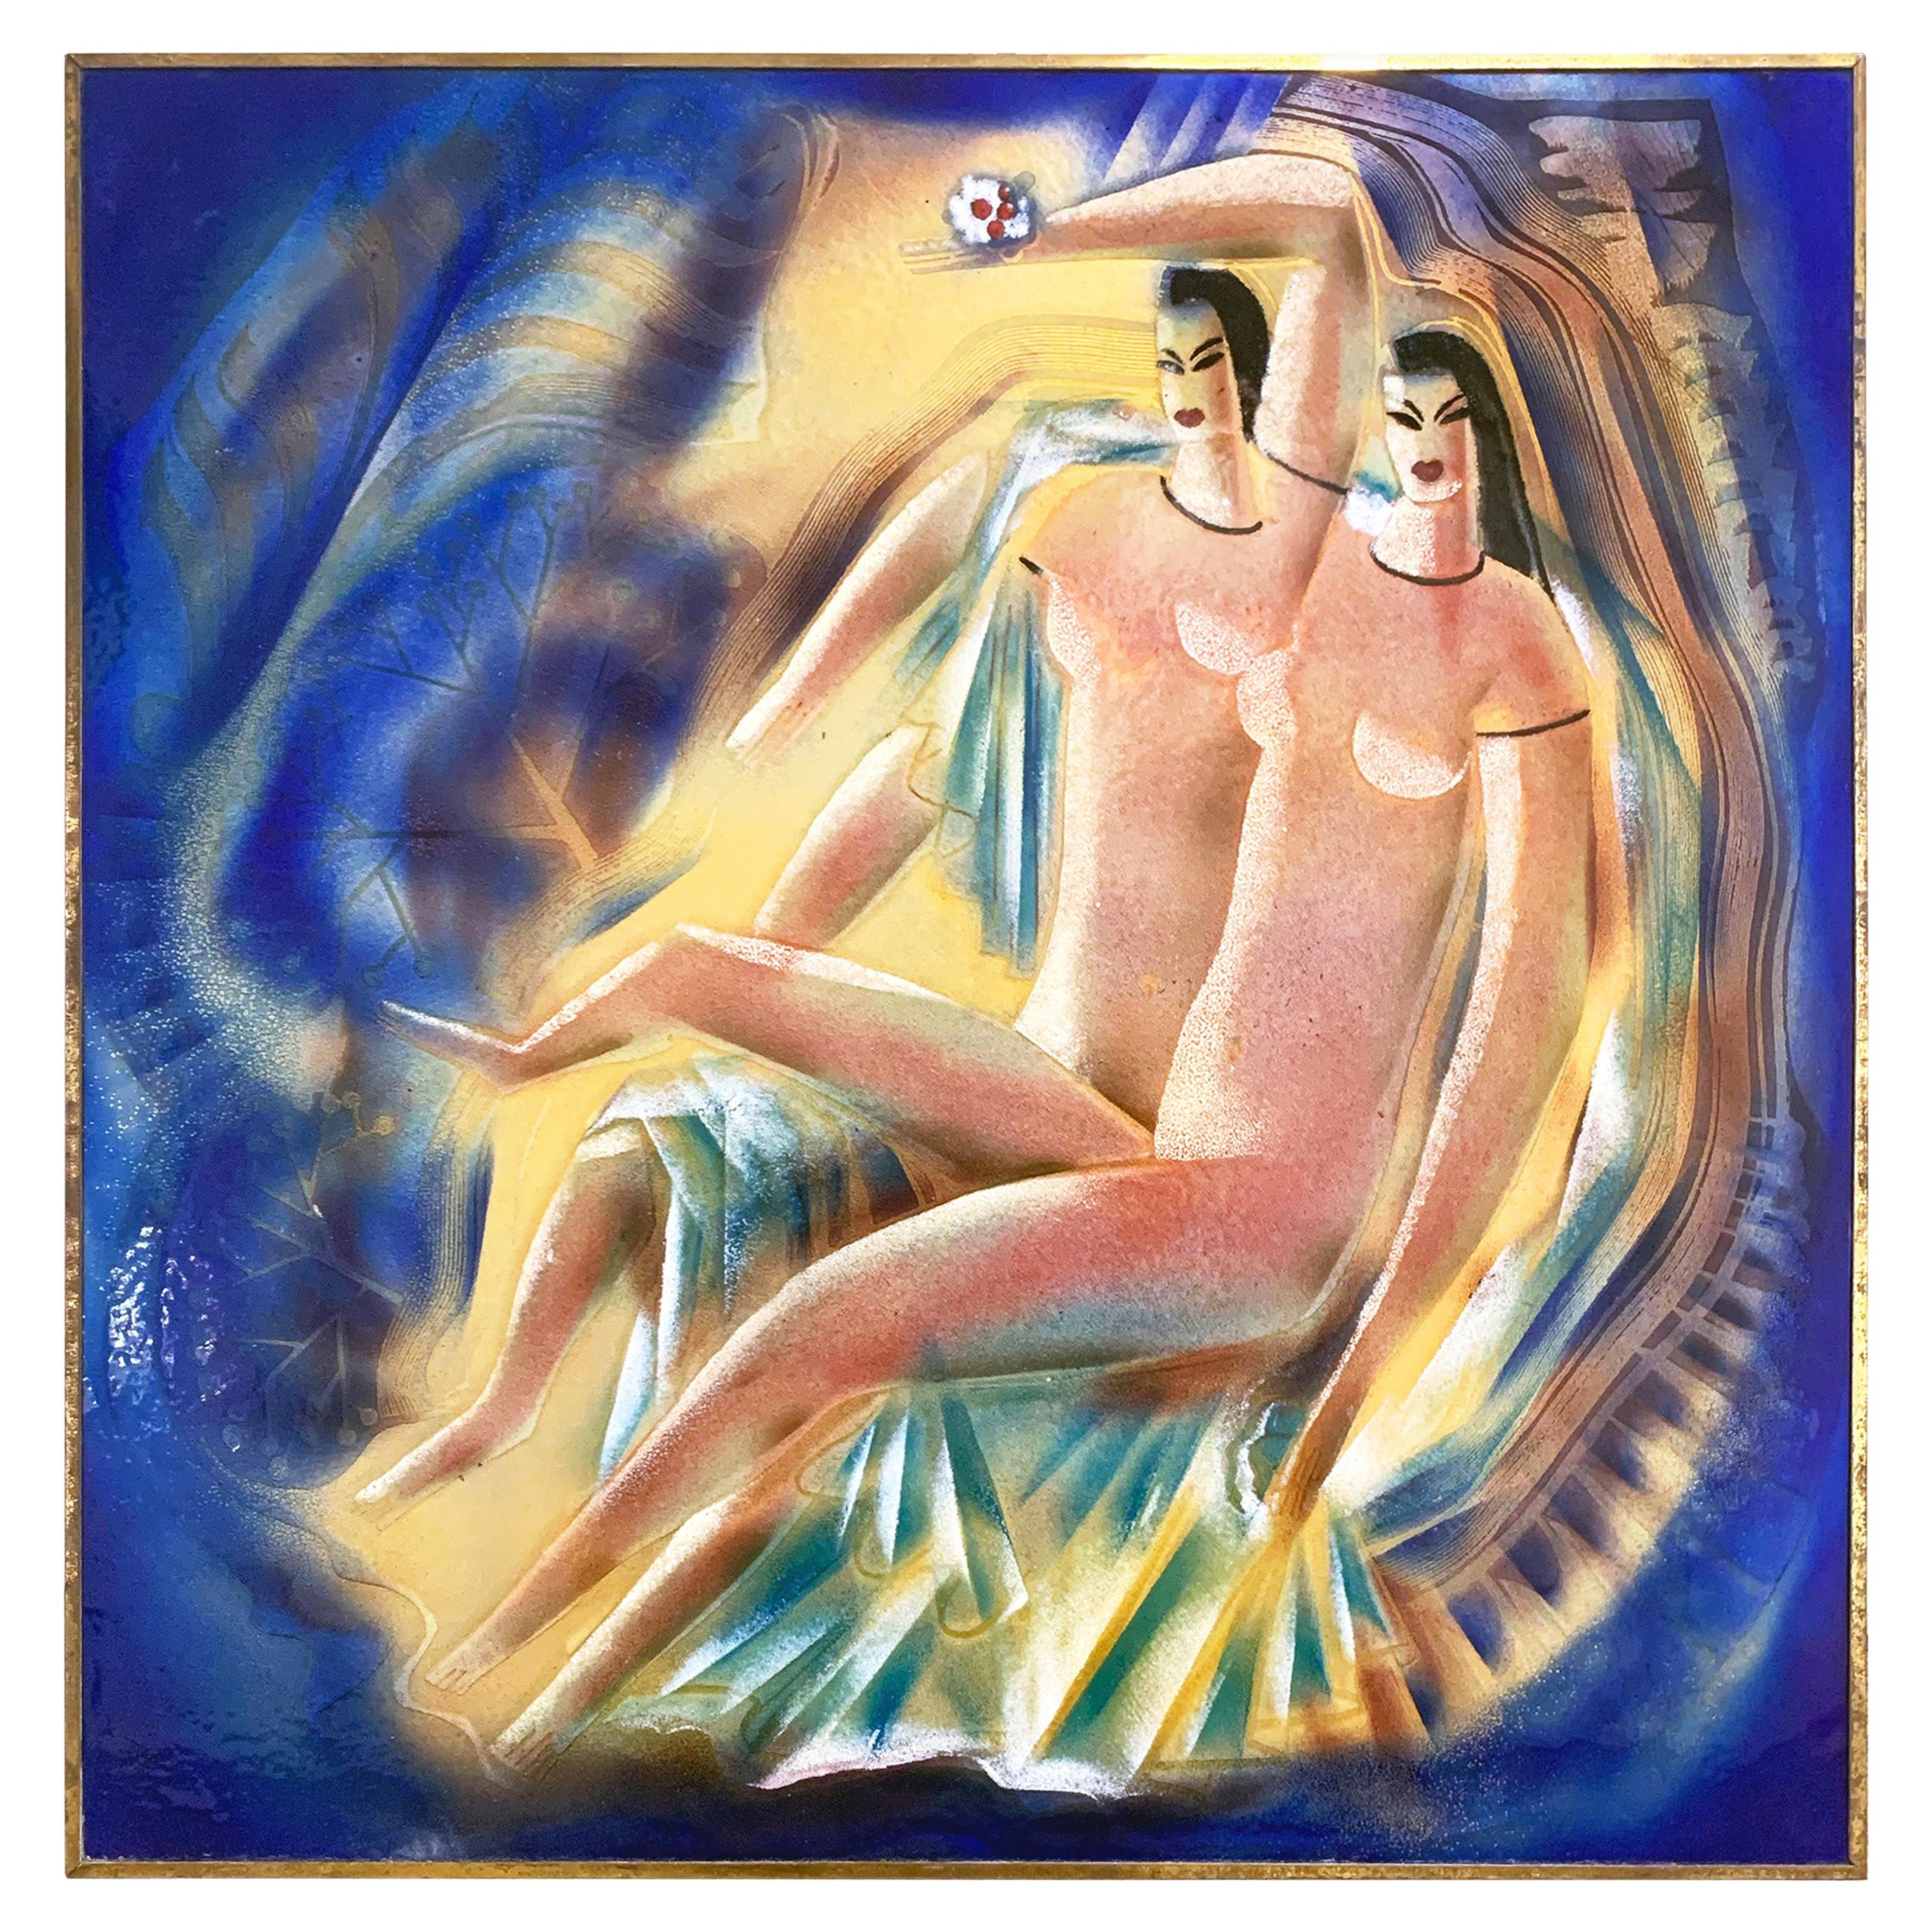 """""""Mannerist Nudes,"""" Spectacular Art Deco Enamel with Female Nudes in Blue & Gold"""